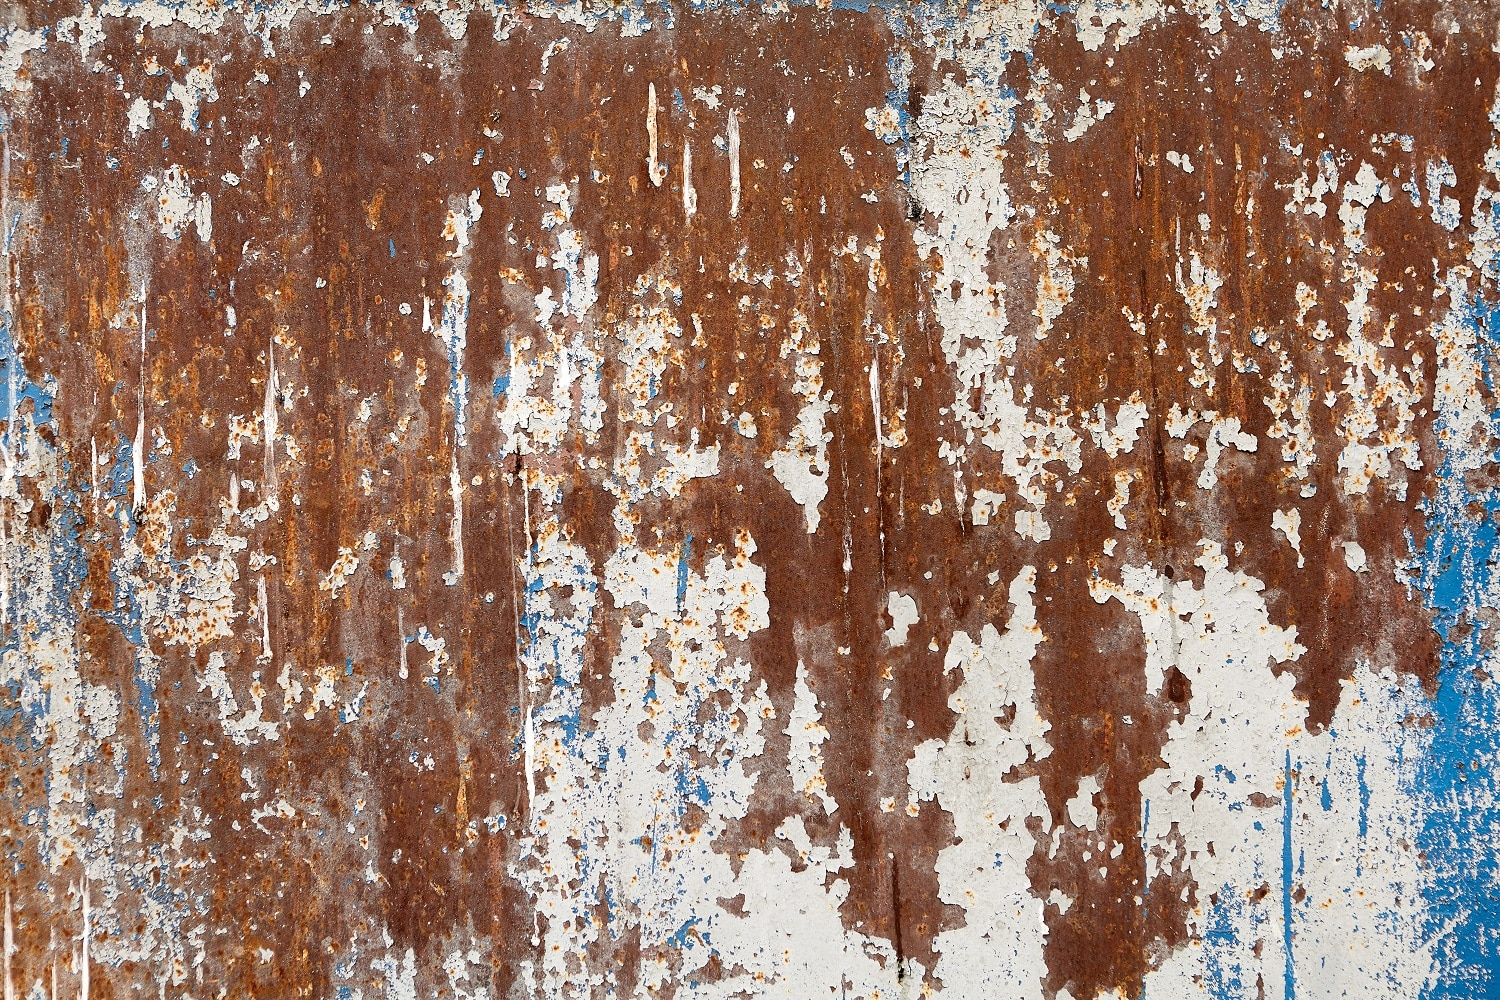 Surface of steel wall with peeling paint and corrosion, texture backdrop.